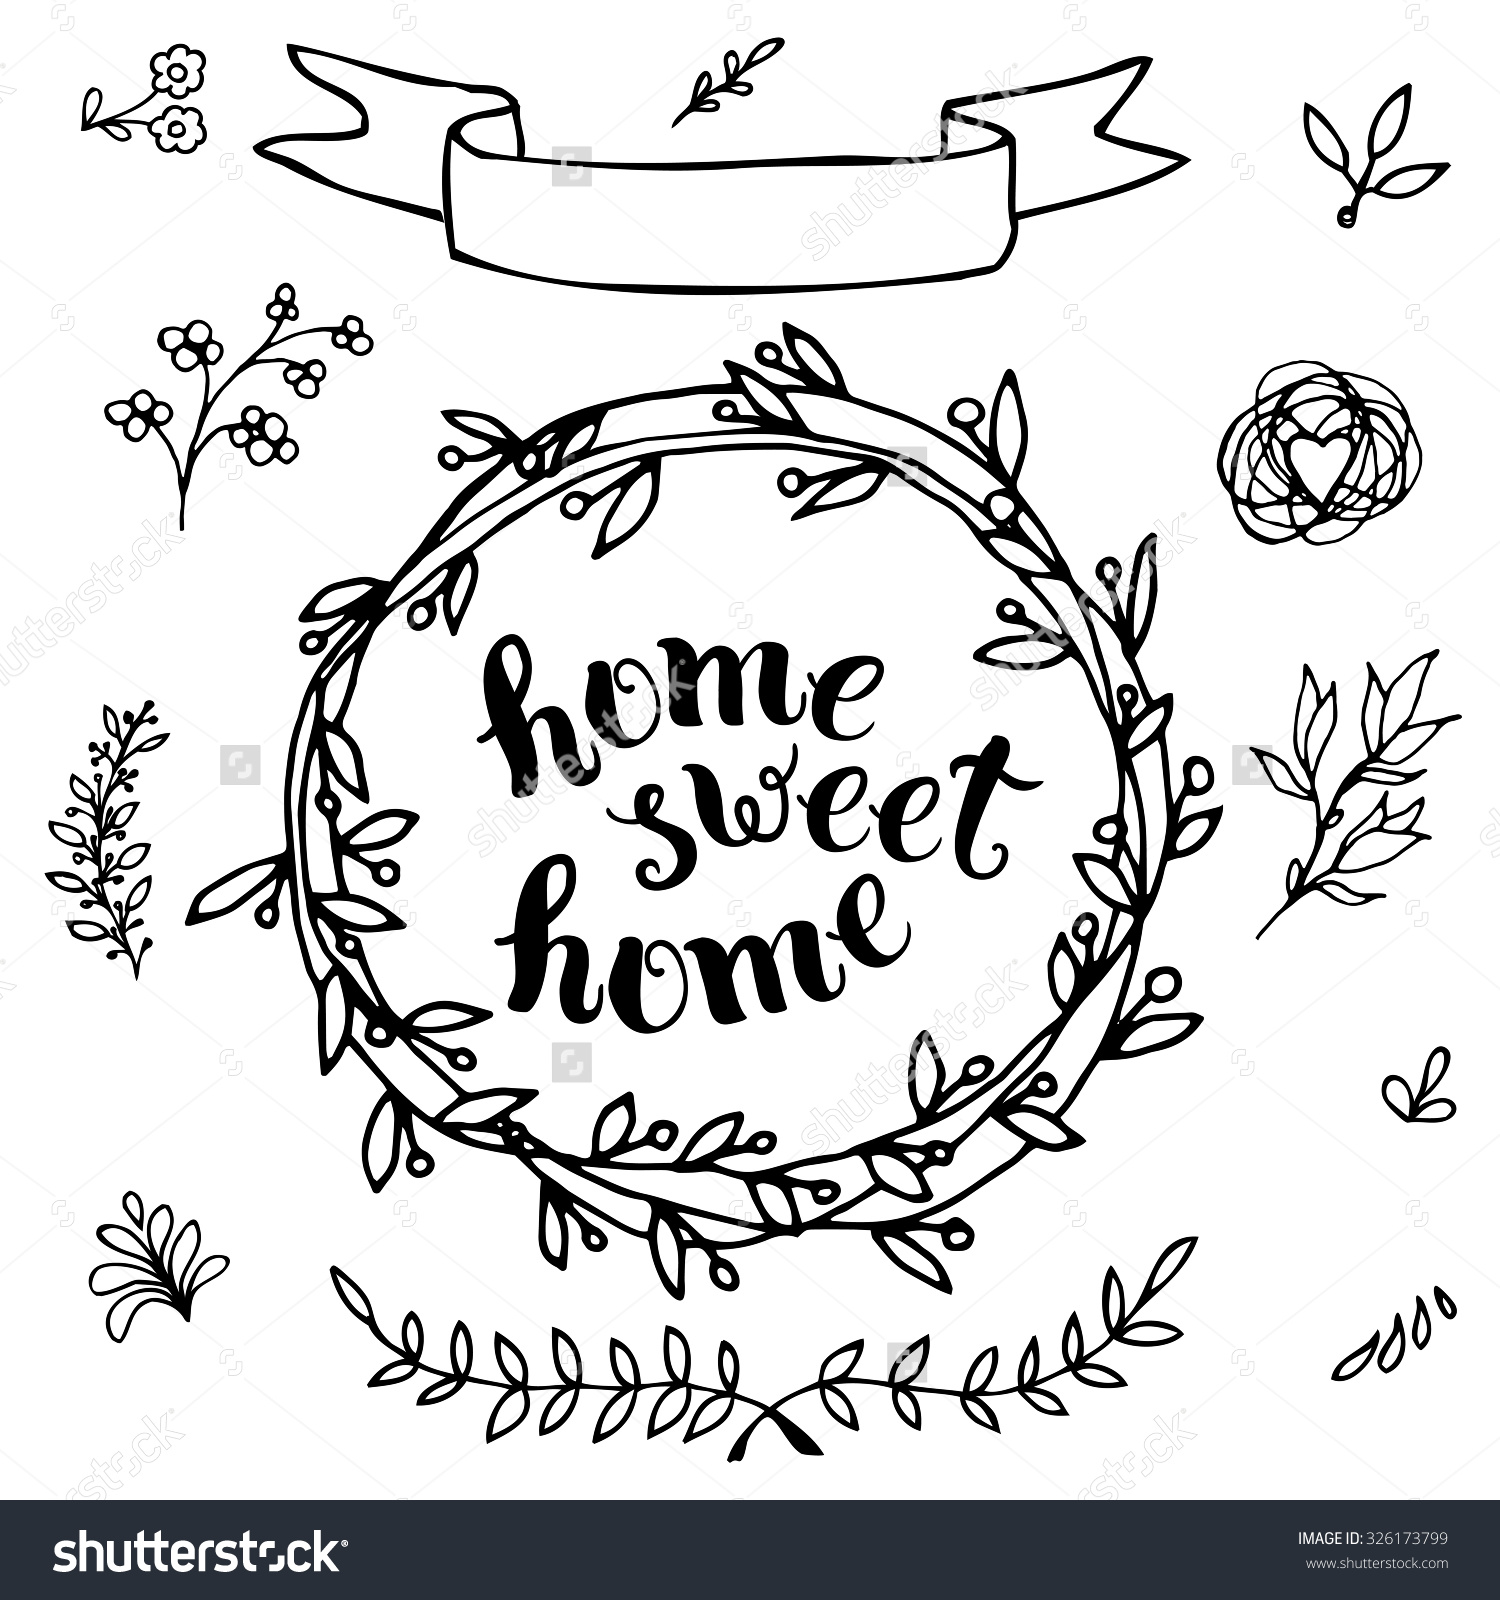 Home sweet home clipart black and white clip royalty free Home Sweet Home Handmade Calligraphy Vector Stock Vector 326173799 ... clip royalty free